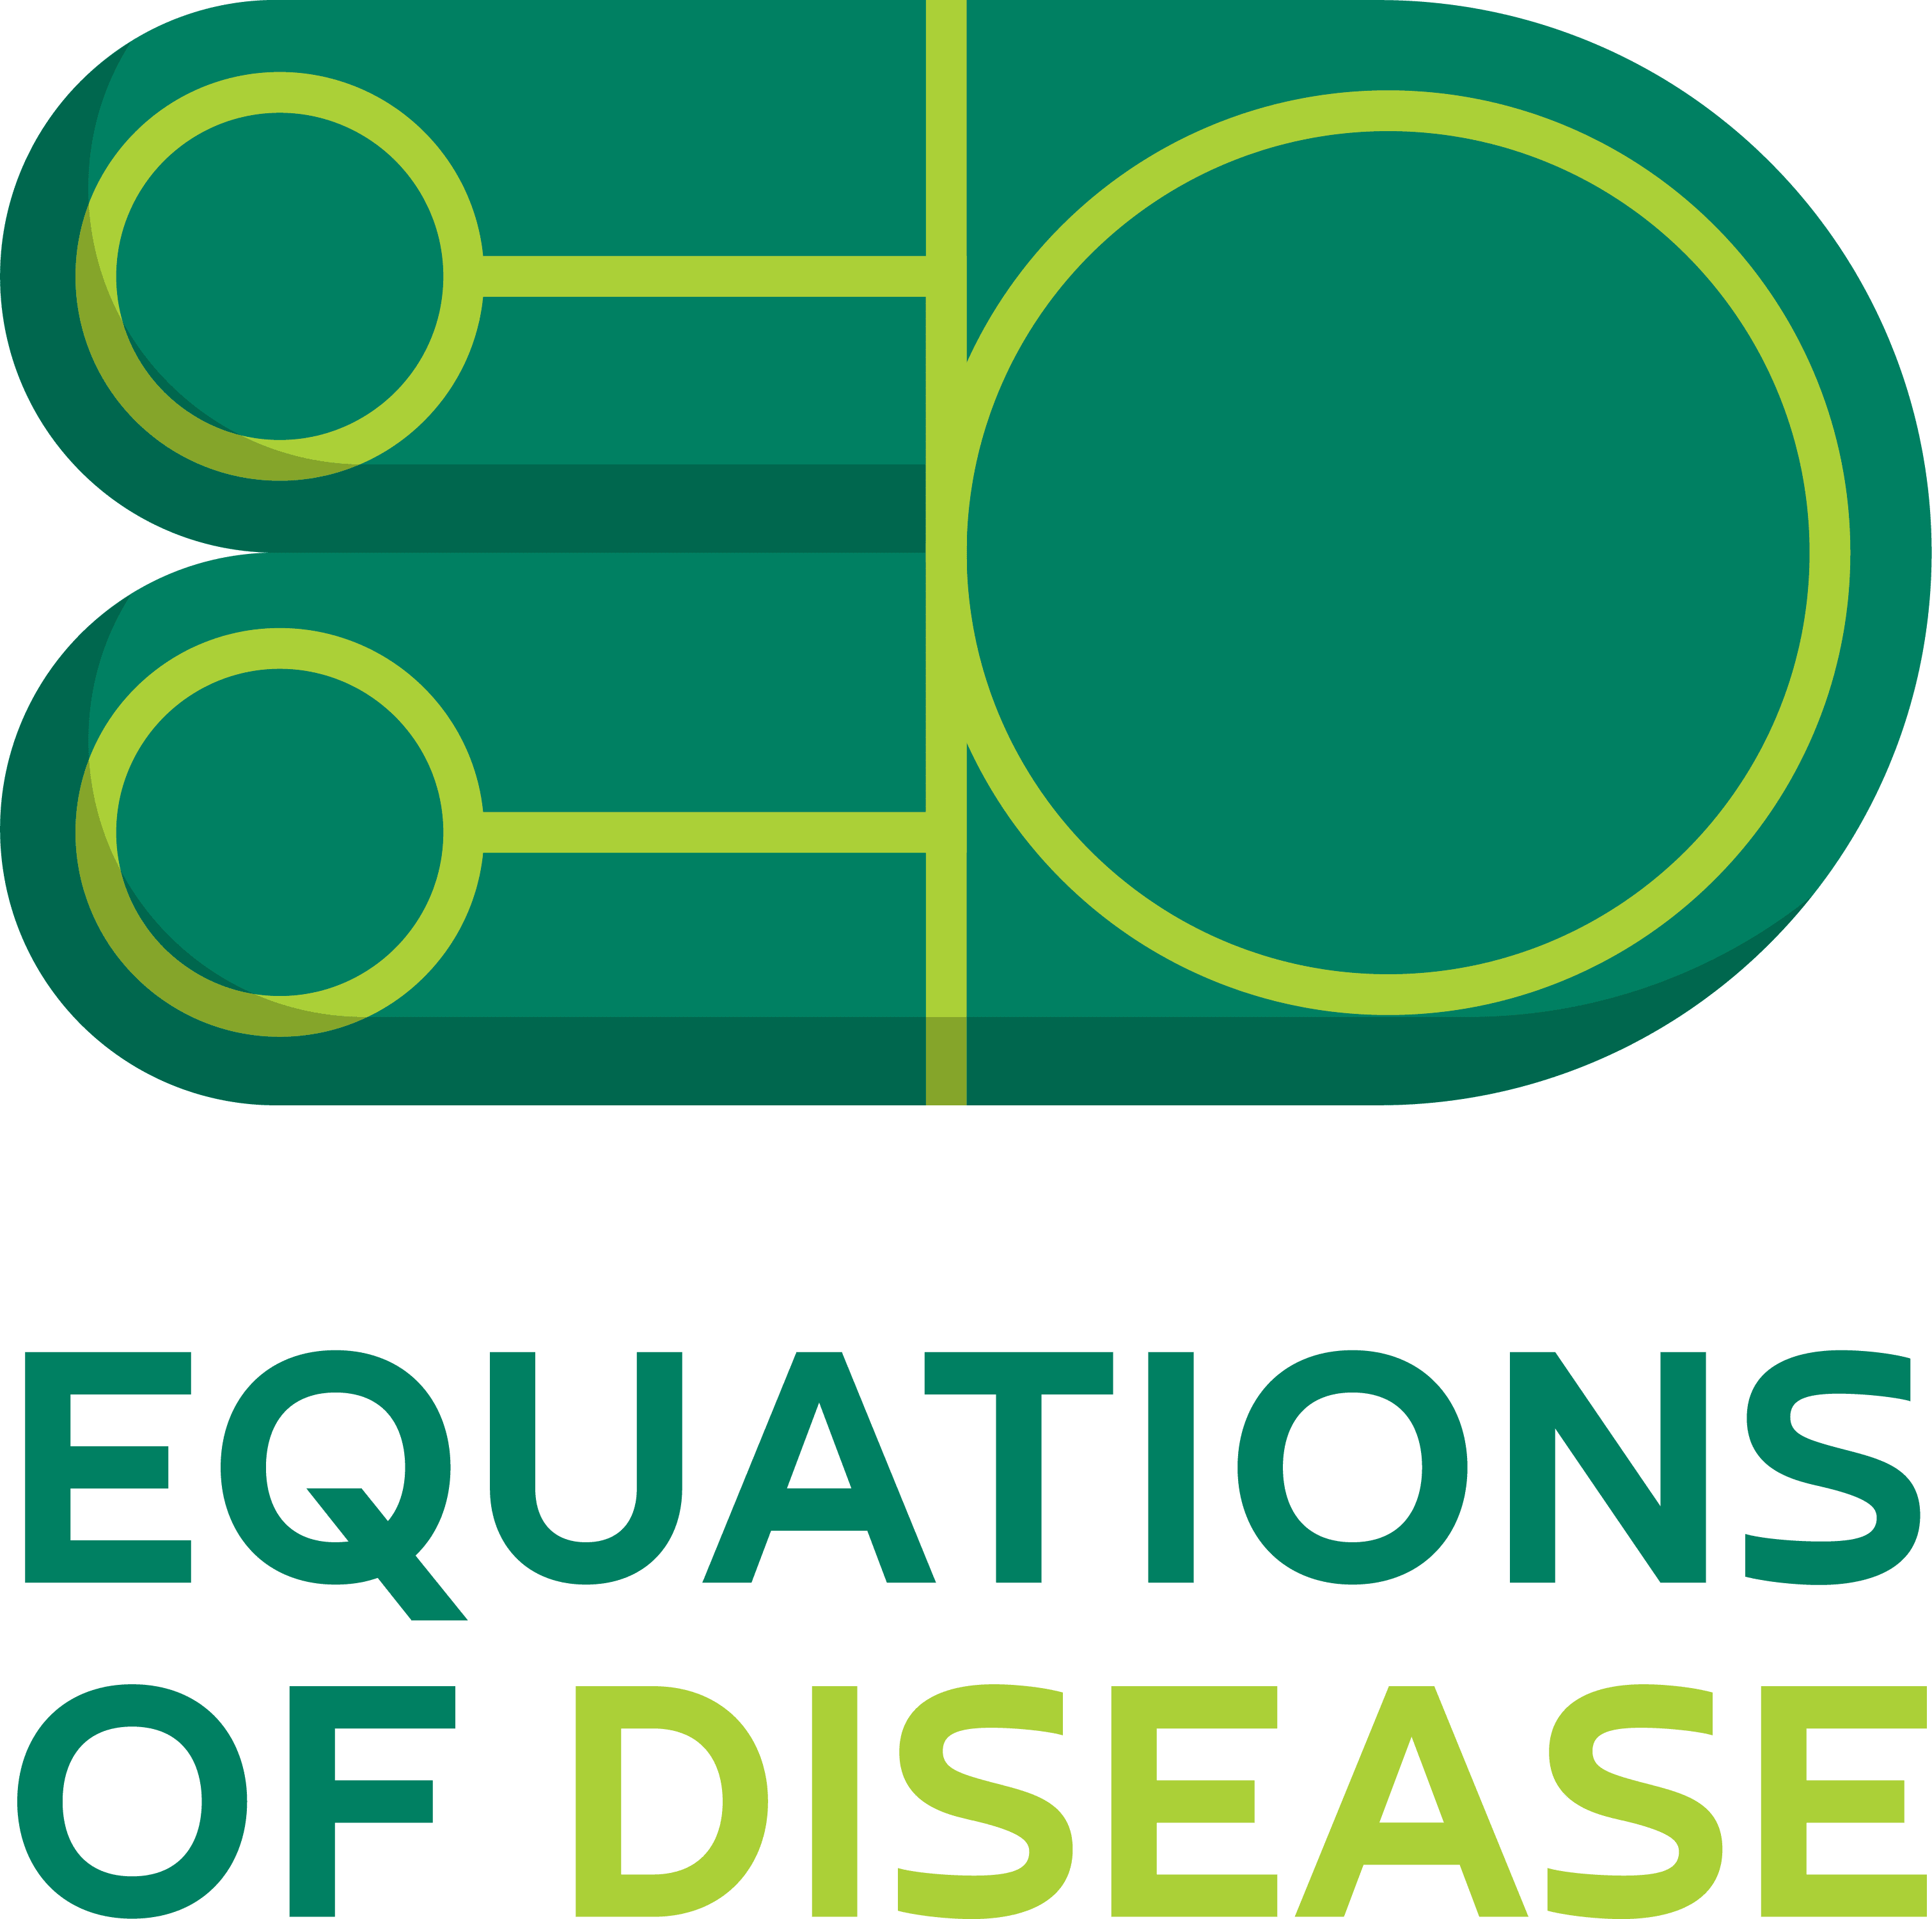 Equations of Disease